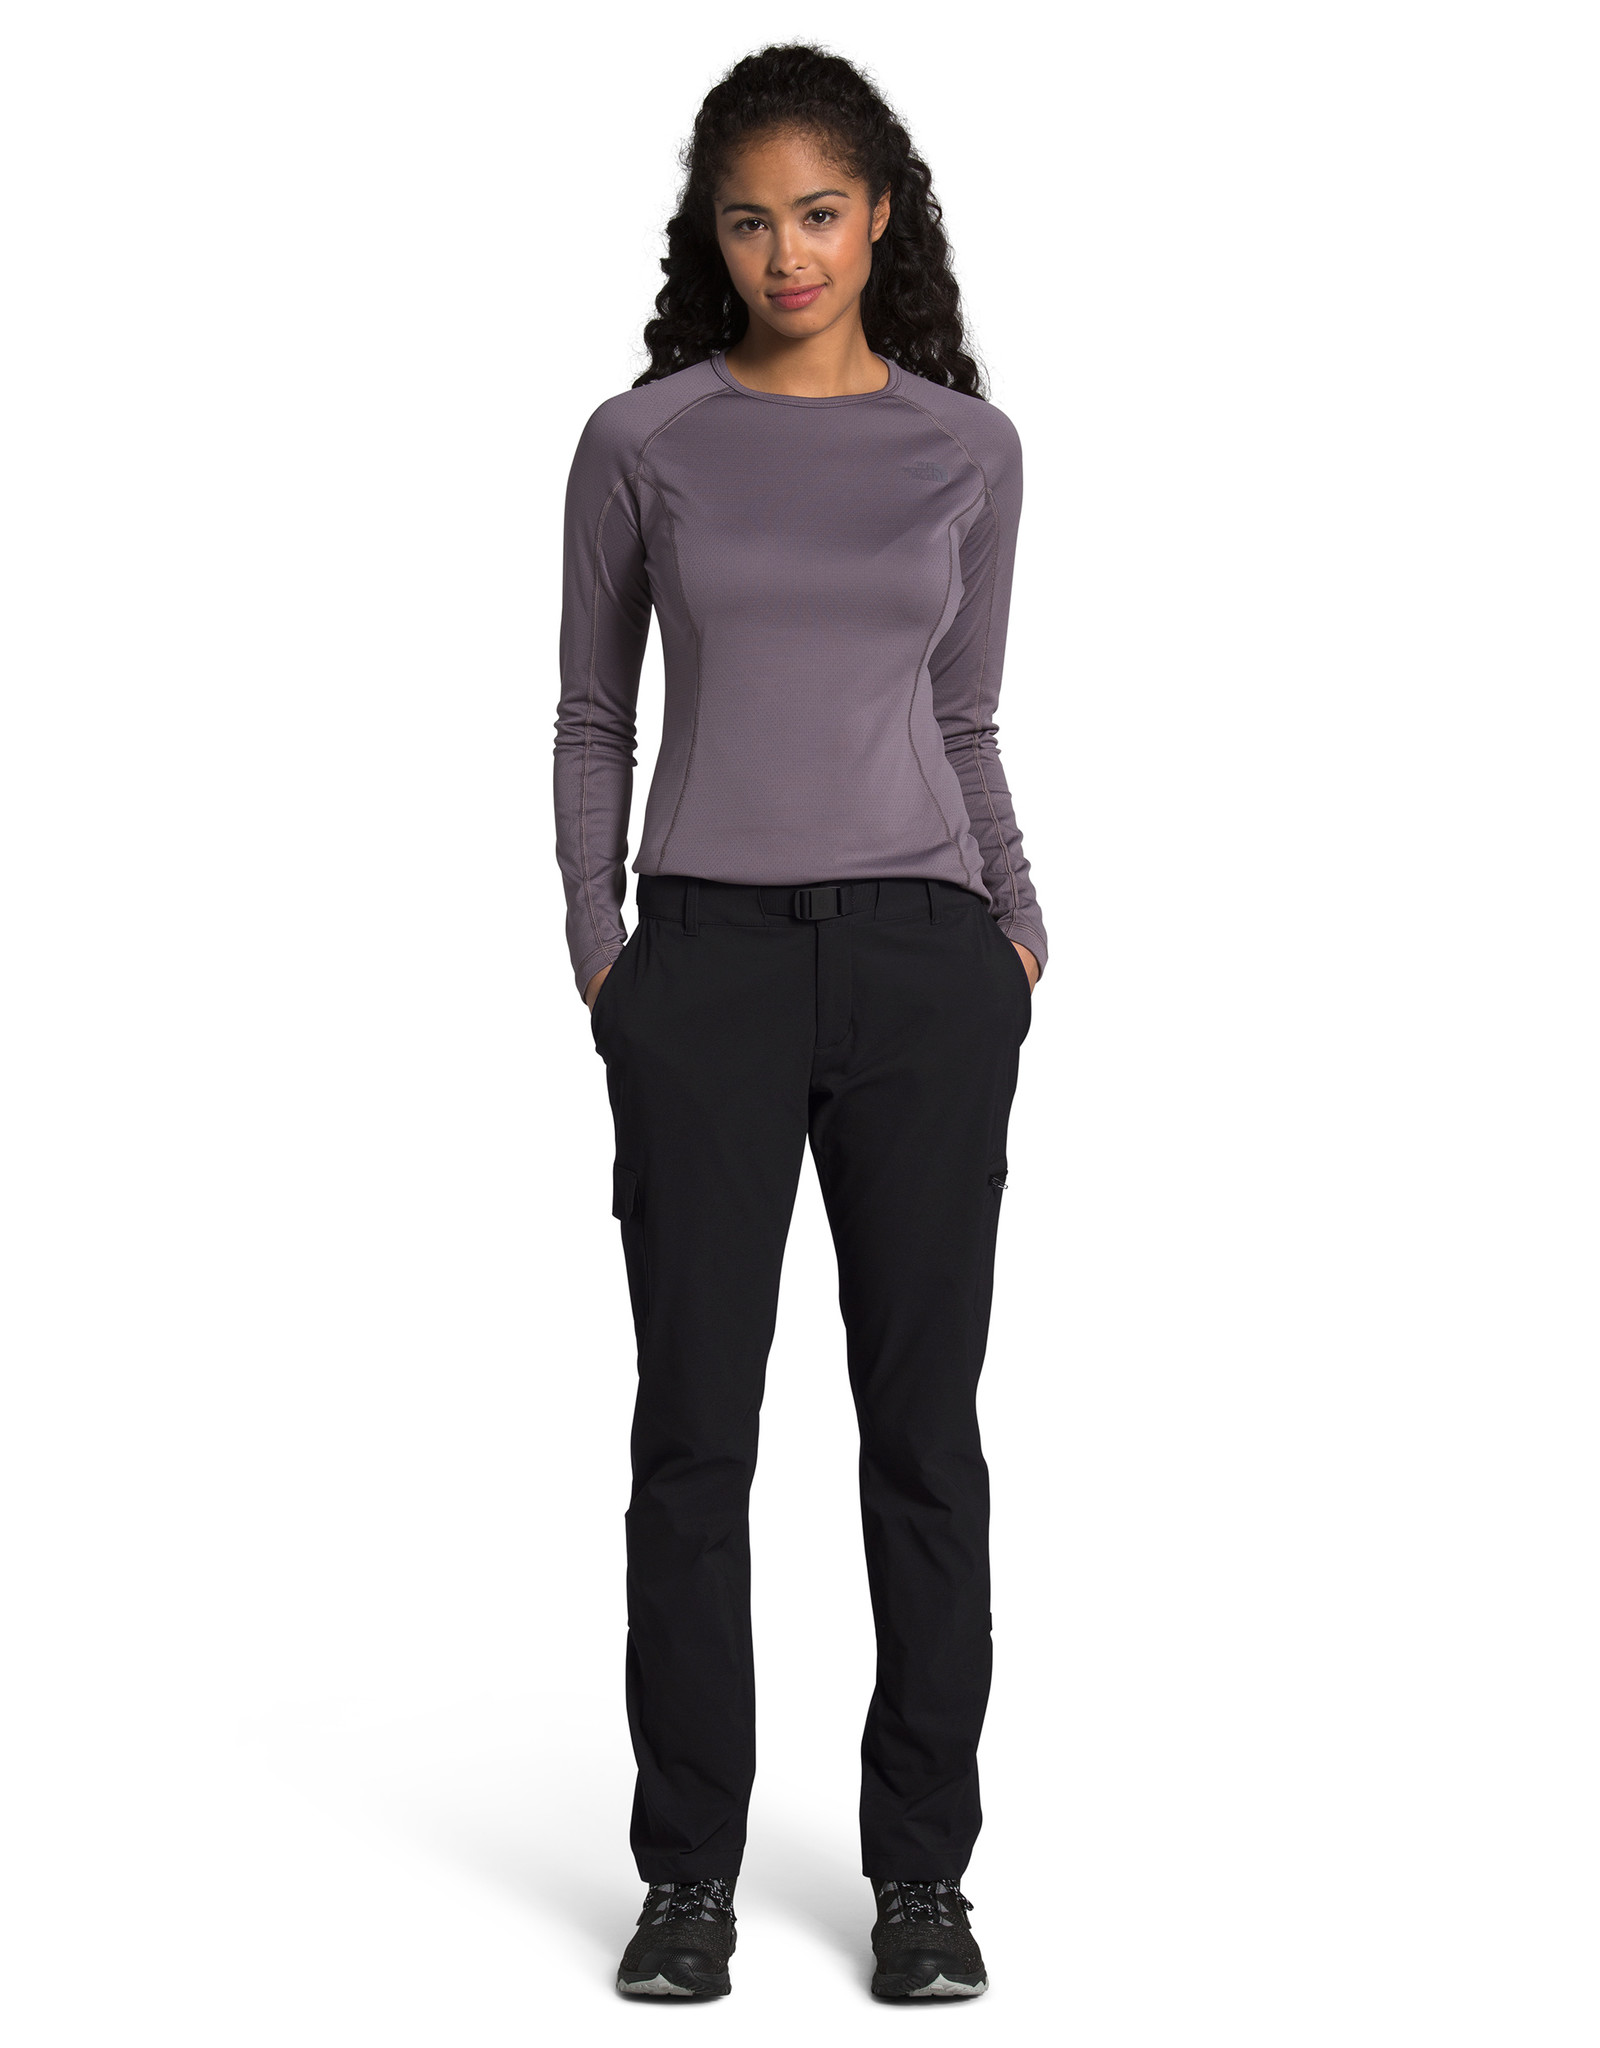 The North Face The North Face Women's Paramount Active Mid-Rise Pant - S2020